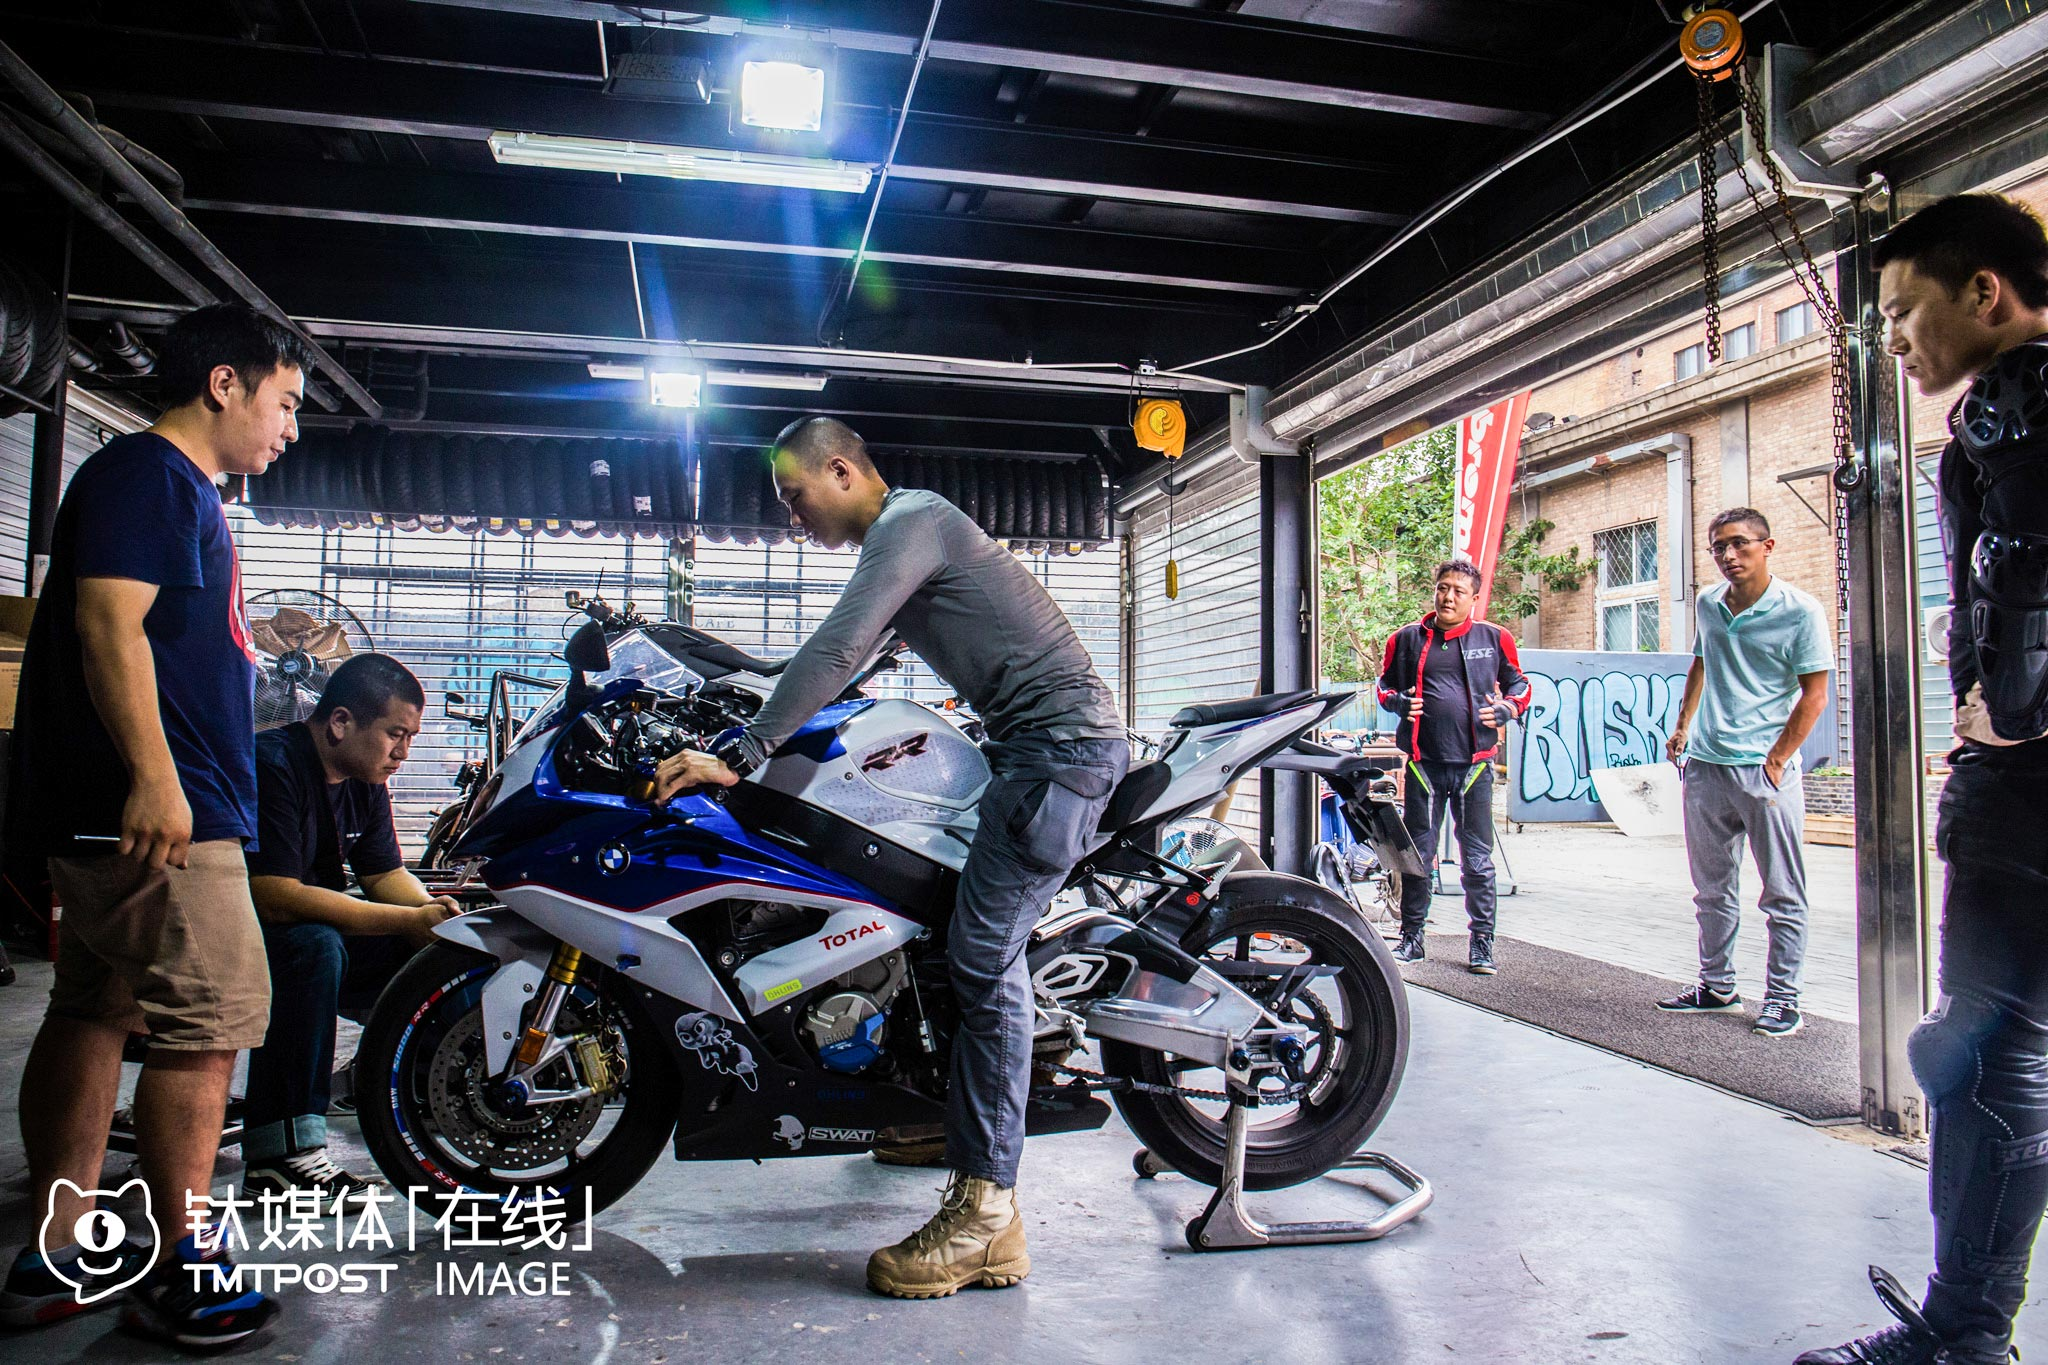 A racecar driver went to this motorcycle repair & modification shop near 798 art region in Beijing to see if the spare parts he ordered two months ago from Italy arrived. He bought the motorcycle at the price of 300,000 yuan, and spent another 30,000 to 50,000 yuan on modification. The technician told him that they would not only improve the motorcycle's appearance by decorating it with flowers, stickers and paints, but also changed the engine, tyre, shock absorber, air purifier, escape pipe, etc. to enhance the motorcycle's overall security performance.